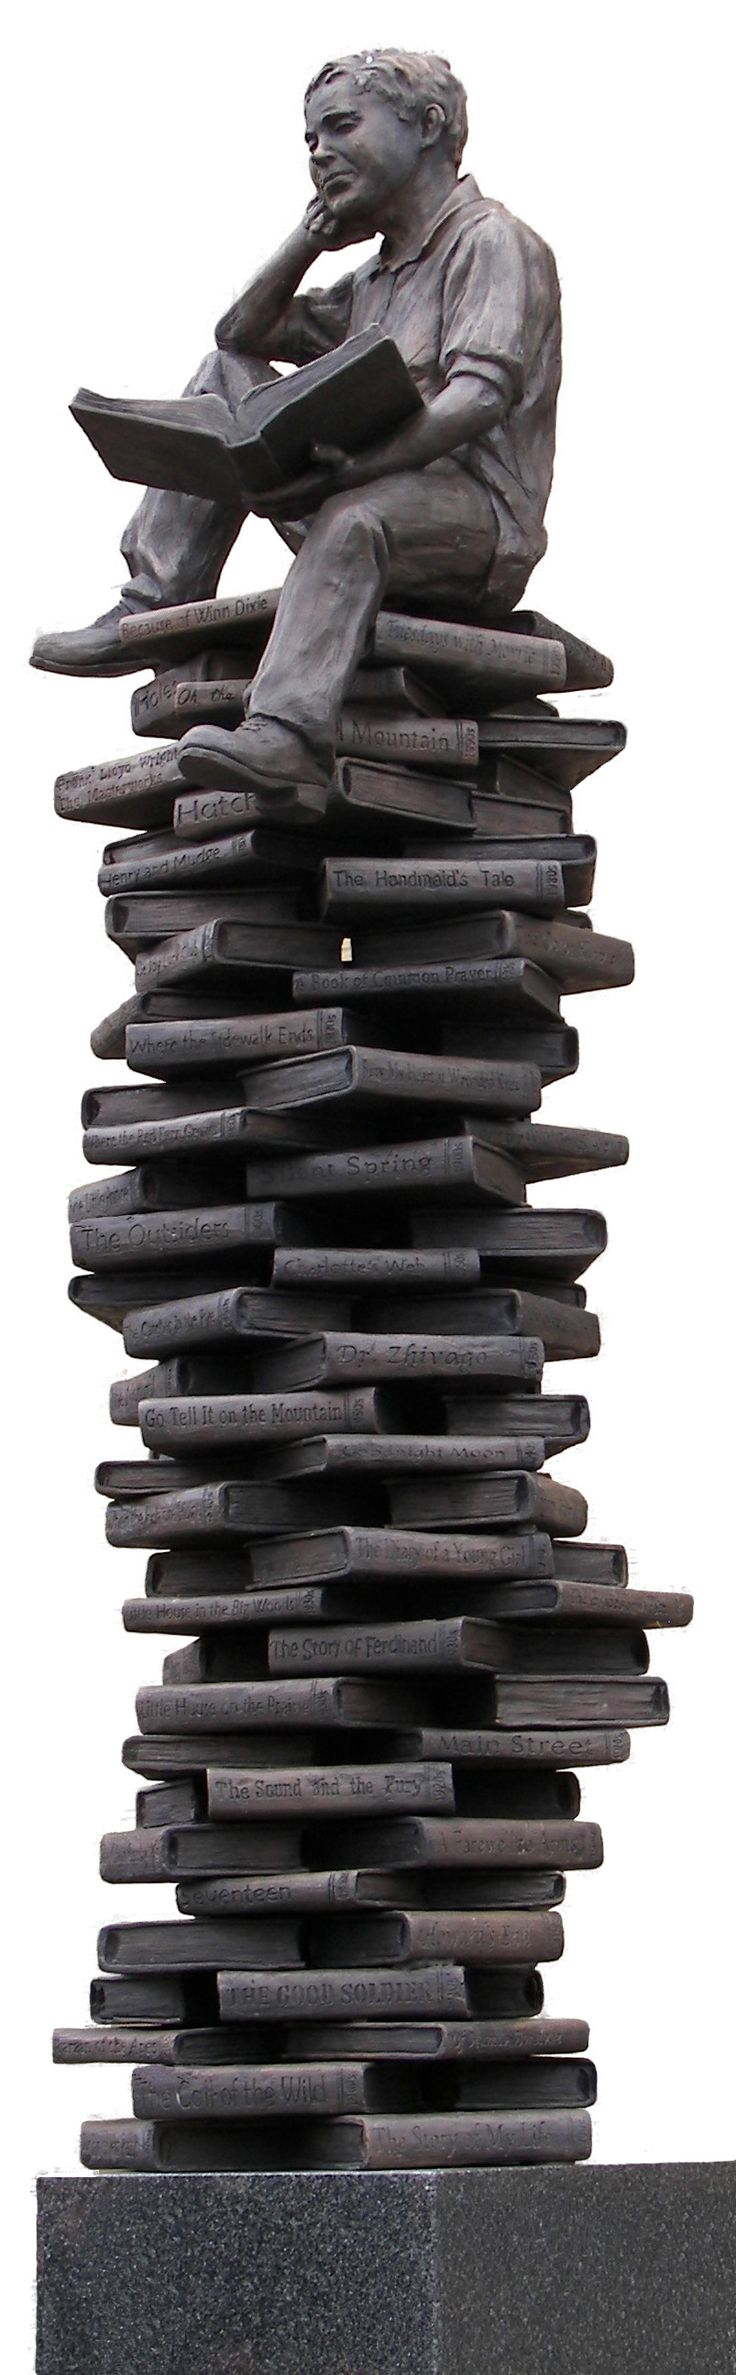 The Centennial Statue at the Coshocton Public Library is the creation of sculptor Alan Cottrill of Zanesville, OH.  The sculpture features a young boy holding an open book and sitting atop a stack of 100 books. Each book represents one year of the Library's service to the community.